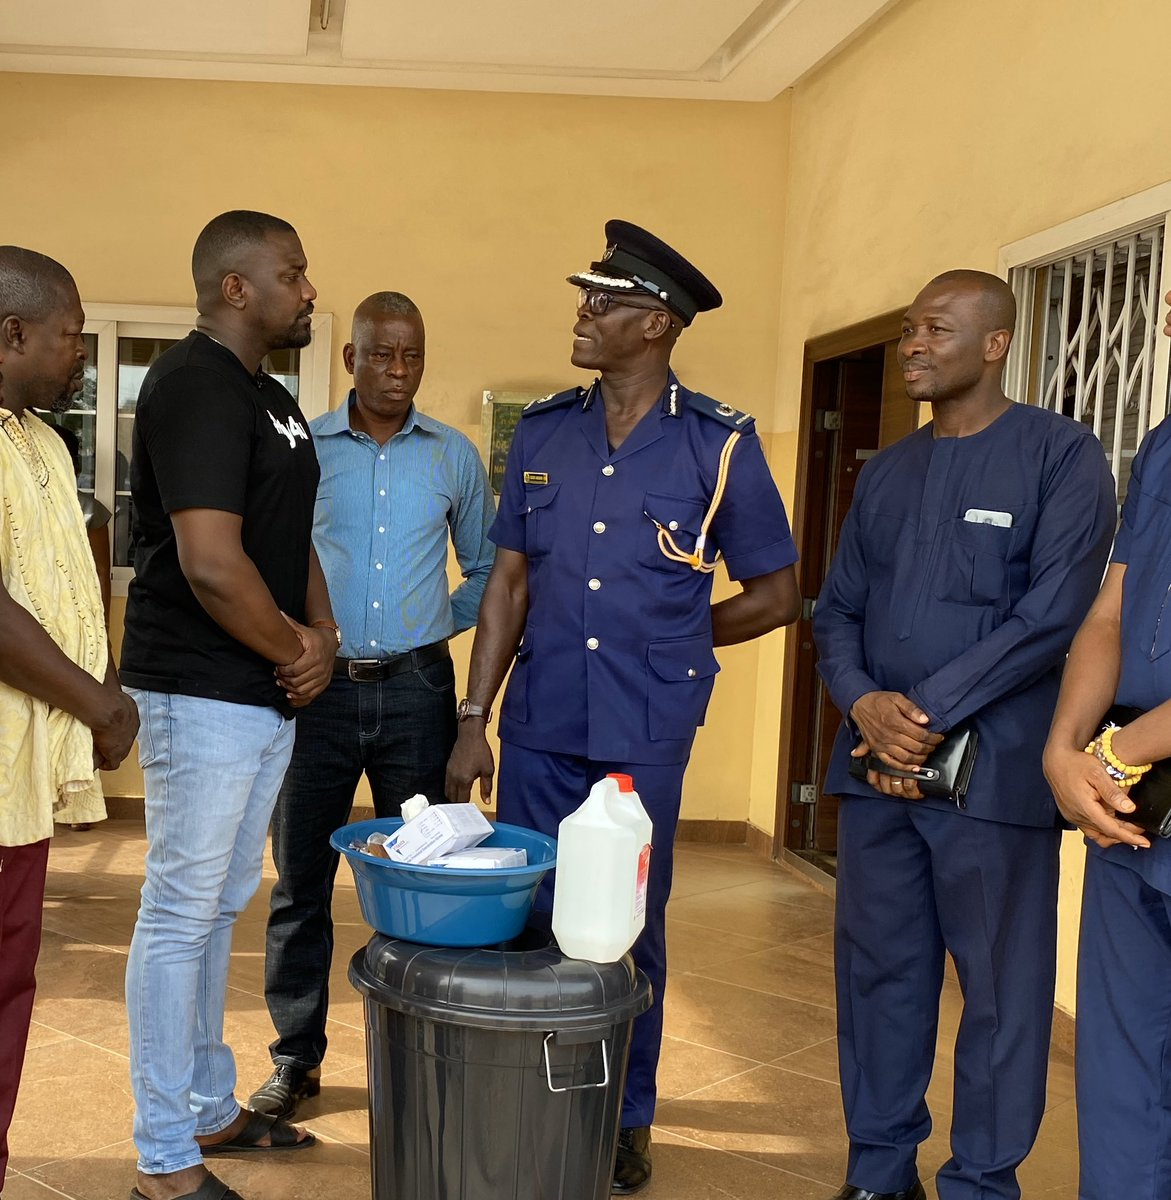 All 5 police stations across the Ayawaso West constituency today received Veronica buckets, hand sanitizers, detergents and hand gloves to help them stay protected against the Corona Virus since they come in contact with people everyday. We need to protect those who protect us. https://t.co/fueUxPynmg